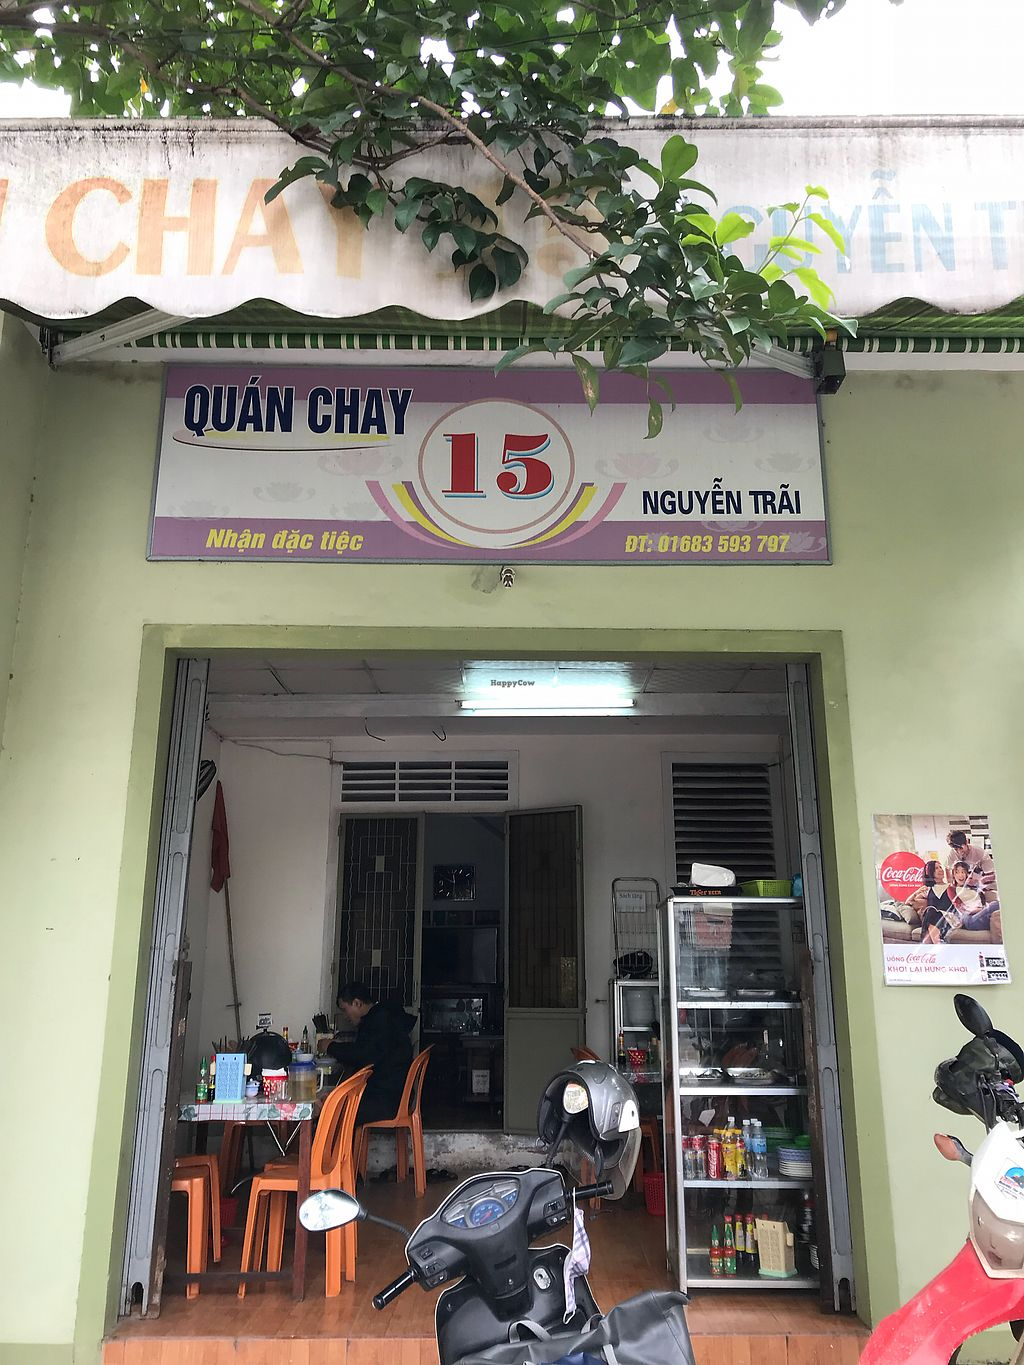 """Photo of Quan Chay 15  by <a href=""""/members/profile/T-Bone"""">T-Bone</a> <br/>From the street <br/> January 13, 2018  - <a href='/contact/abuse/image/84890/346020'>Report</a>"""